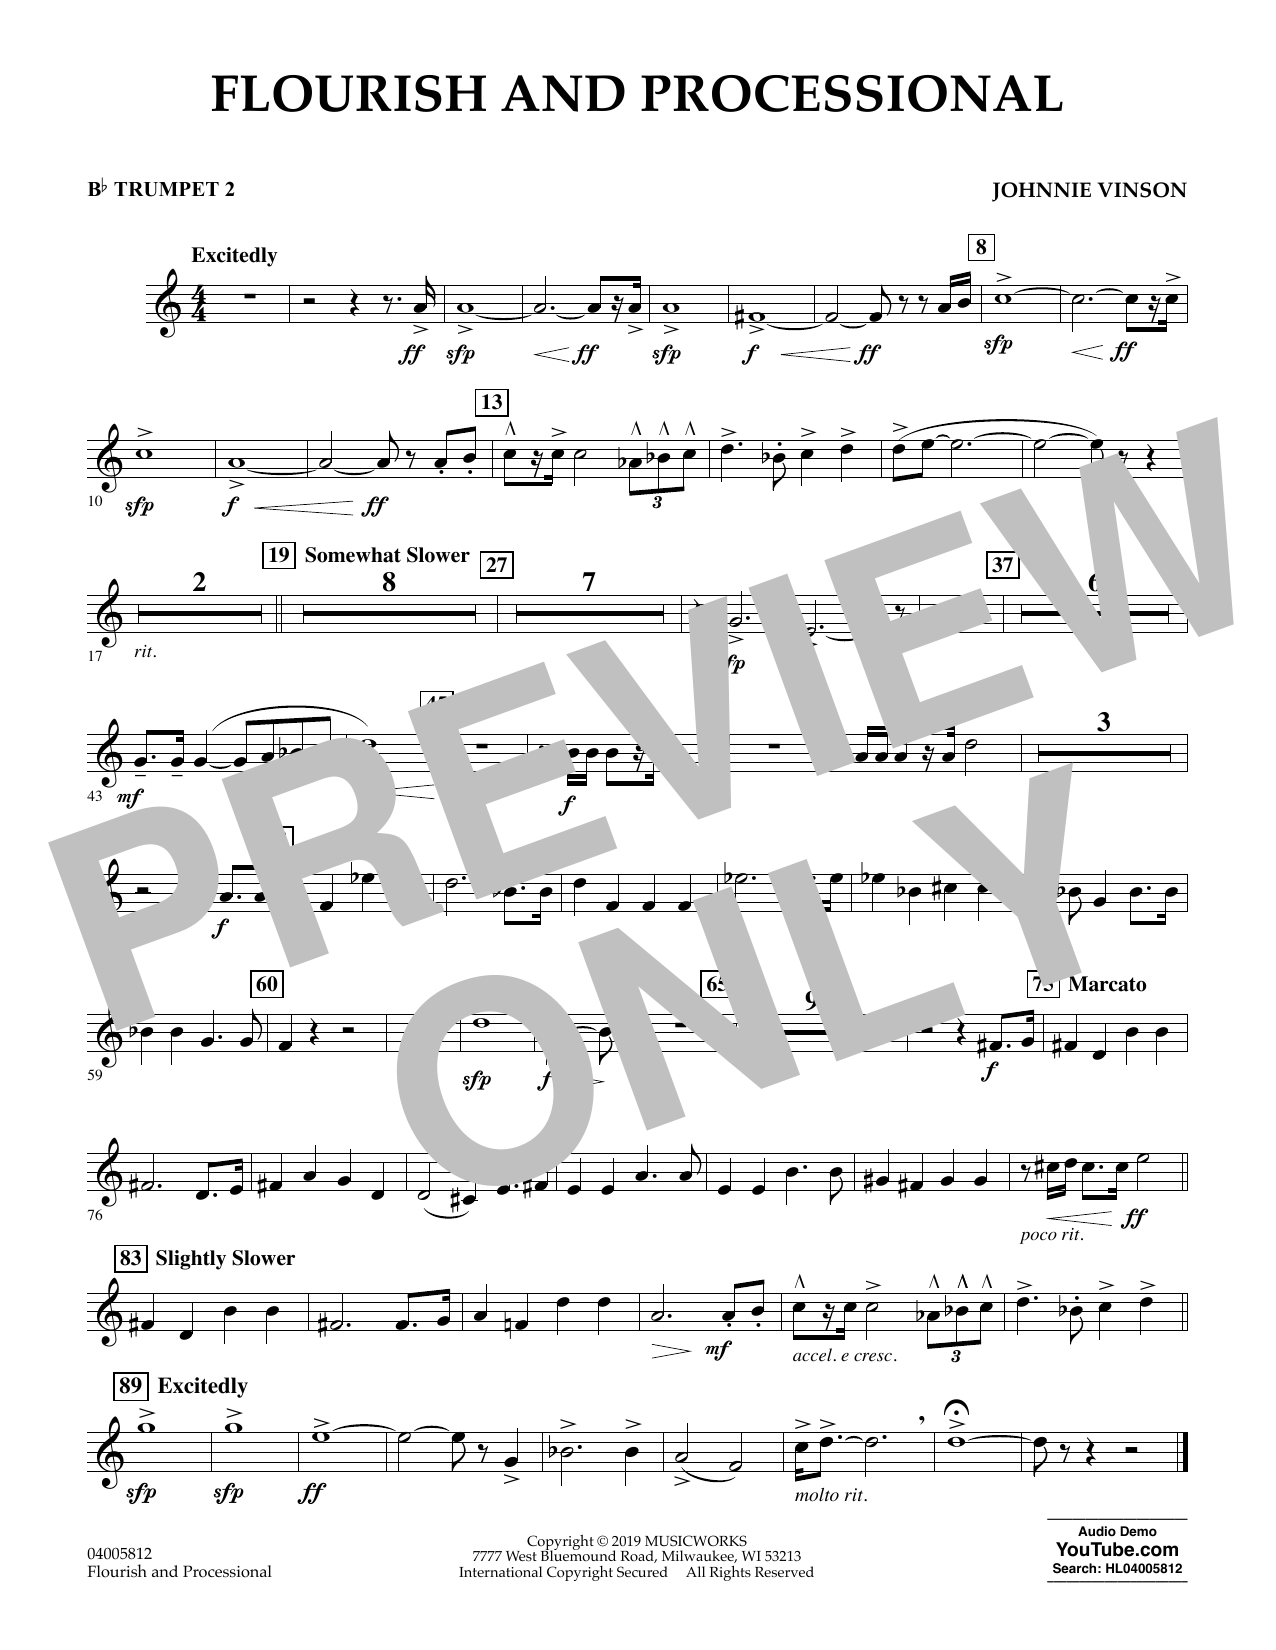 Johnnie Vinson Flourish and Processional - Bb Trumpet 2 sheet music preview music notes and score for Concert Band including 1 page(s)